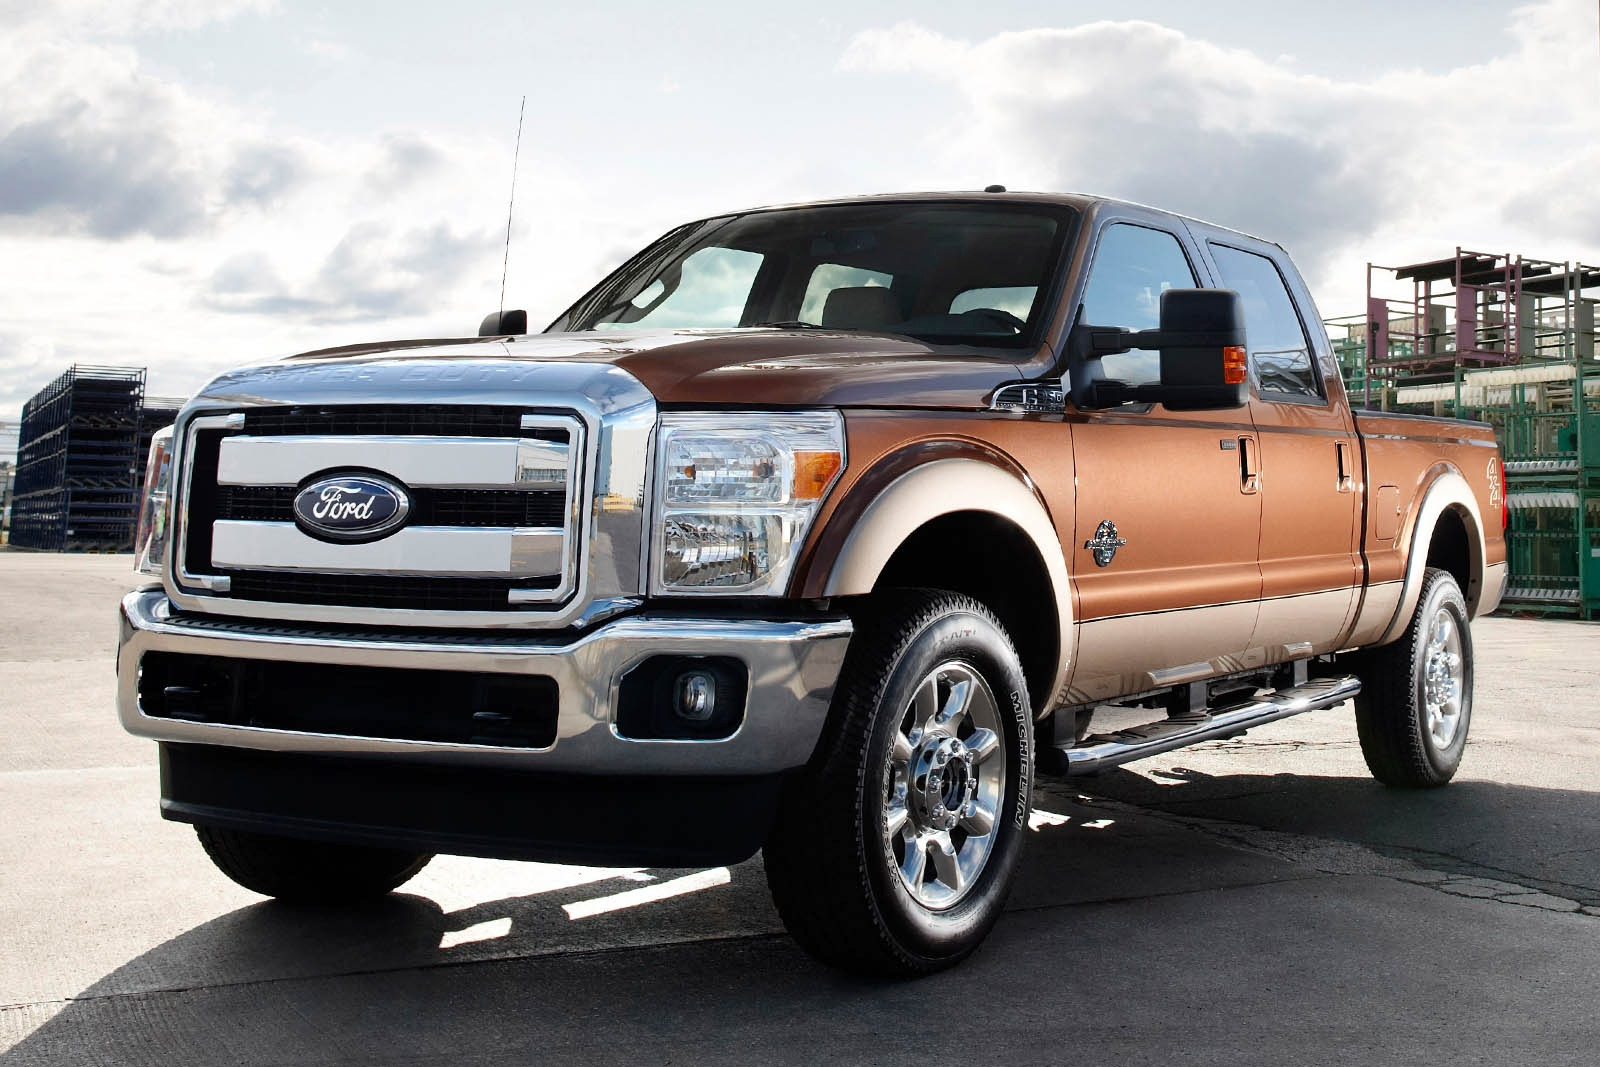 2012 Ford F-250 Super Dut exterior #4